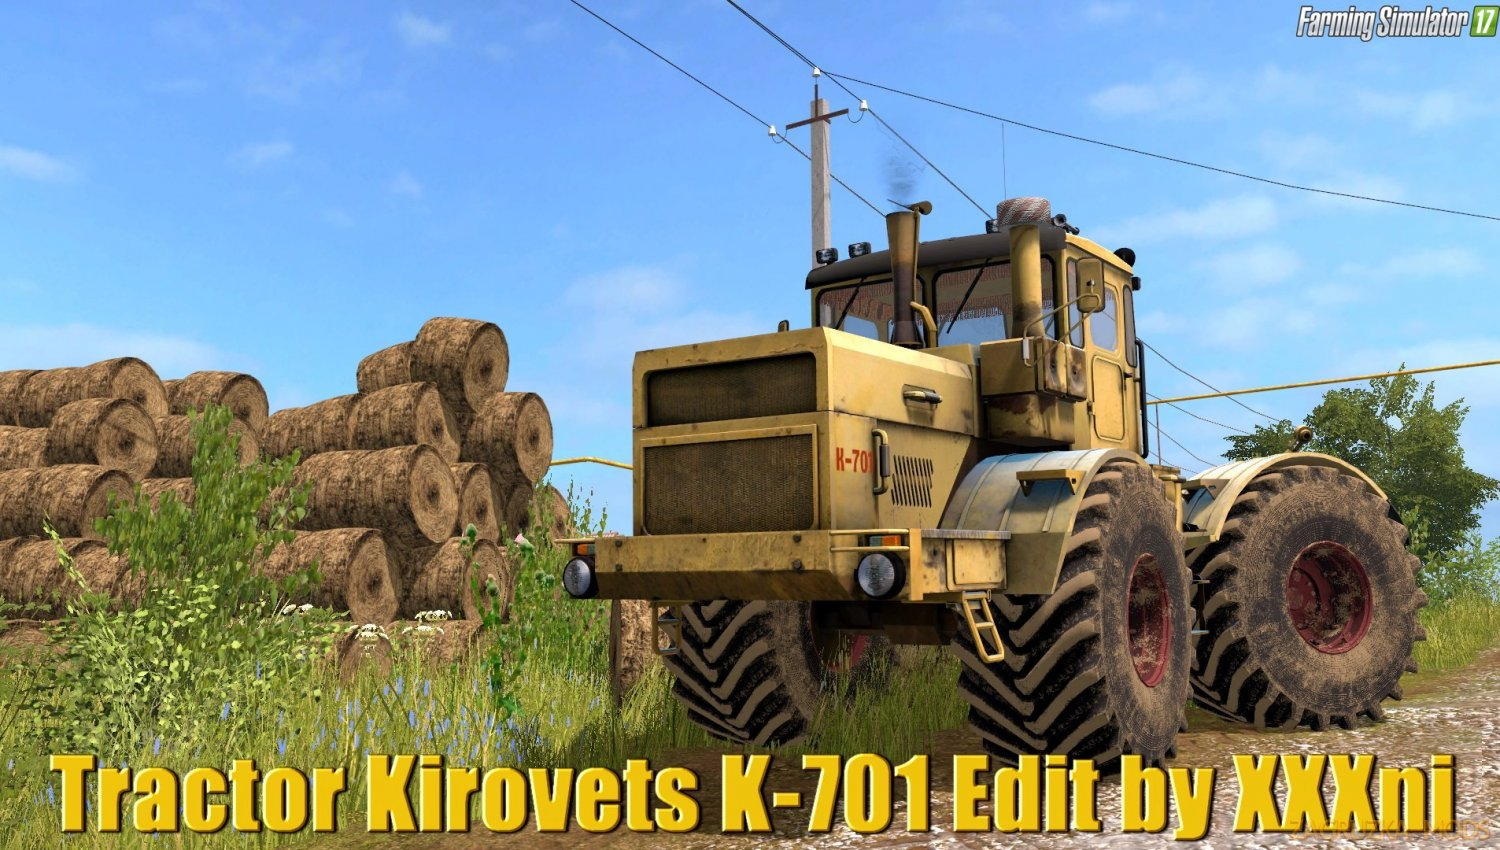 Kirovets K-701 v1.4 Edit by XXXni for FS17